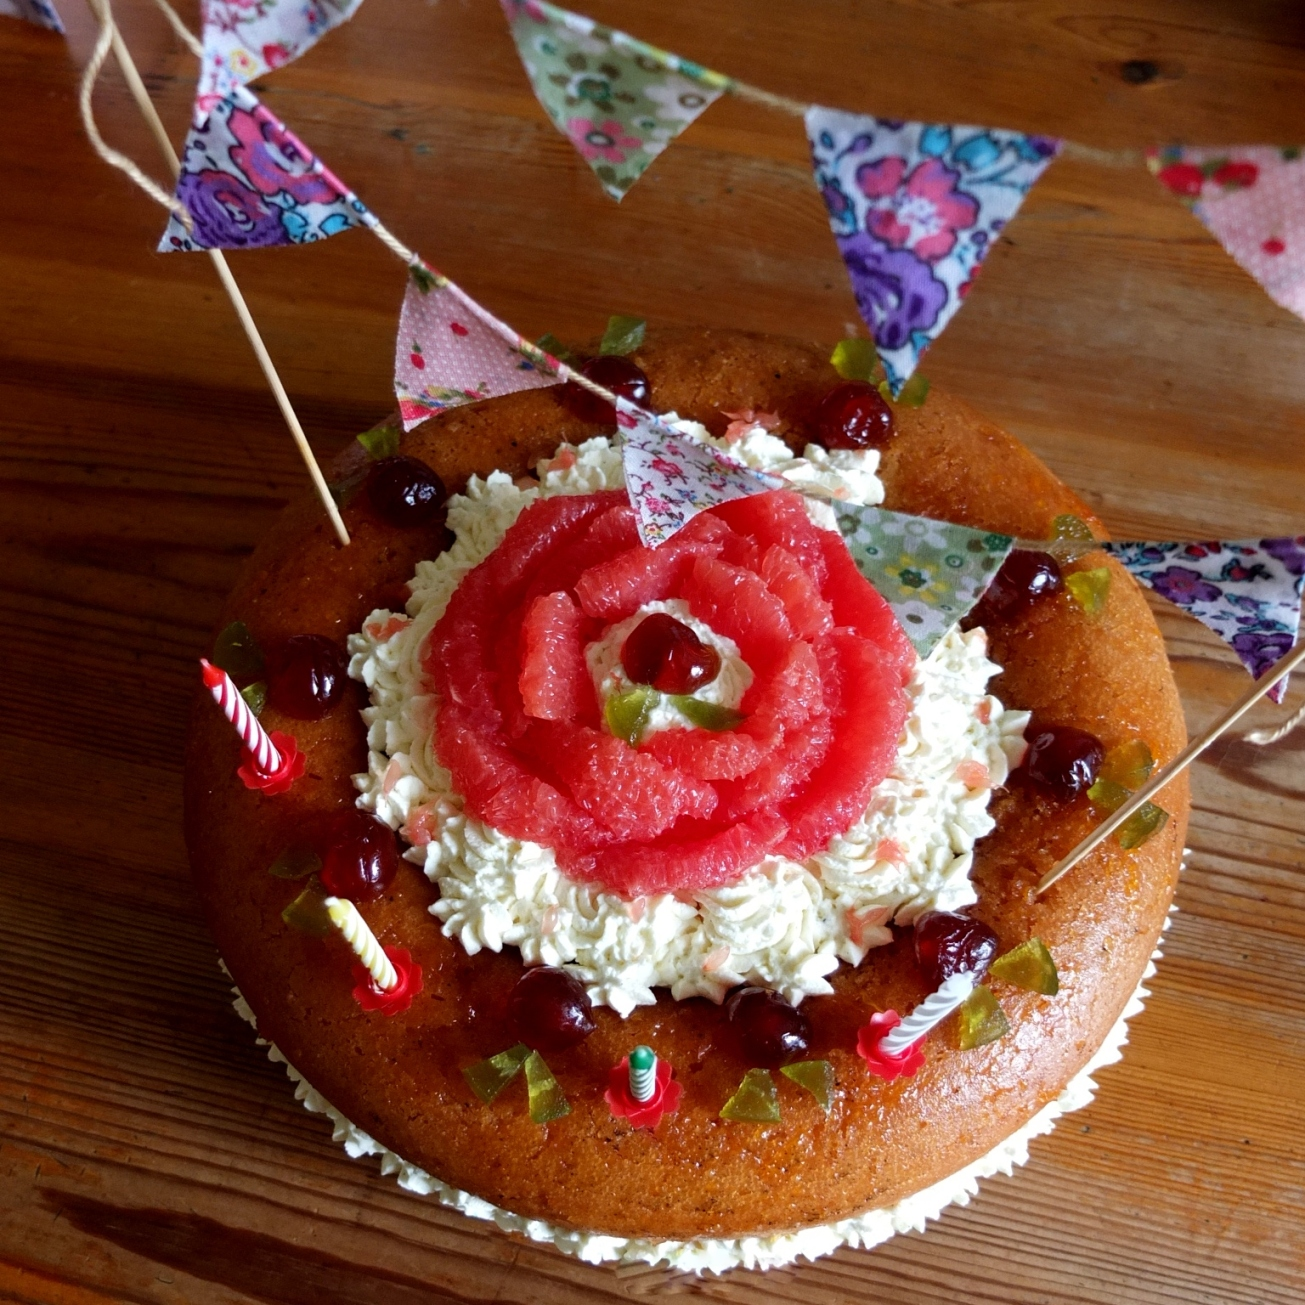 Cake bunting - on the cake